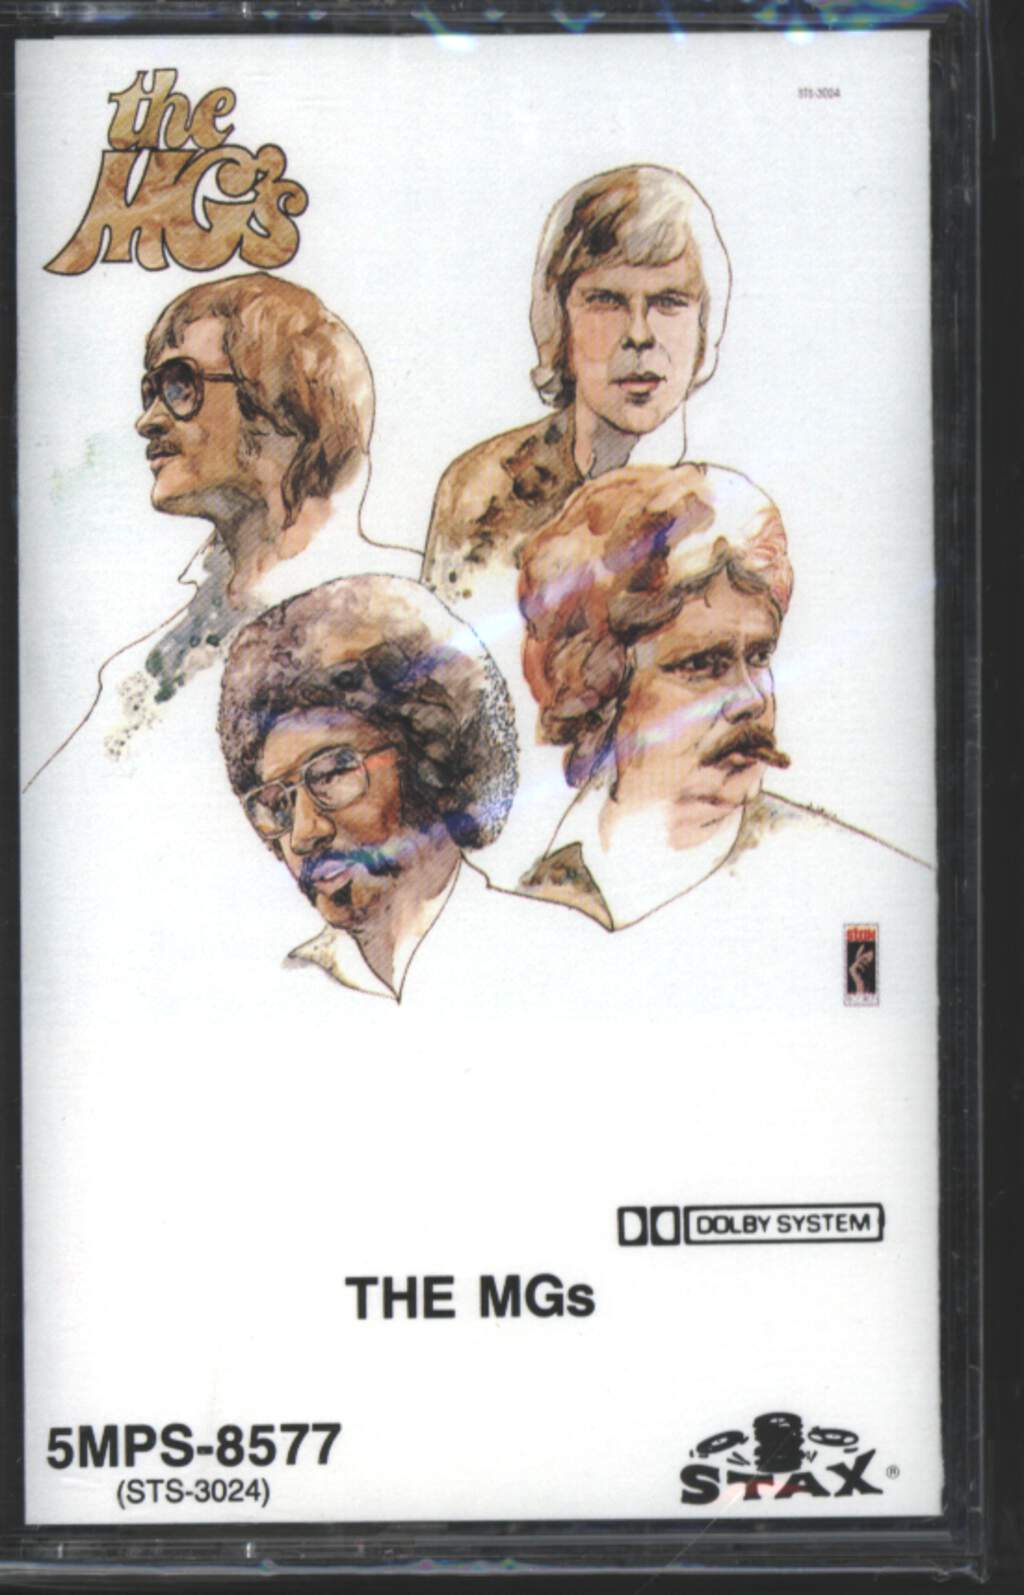 The M.G.'s: The M.G.'s, Tape